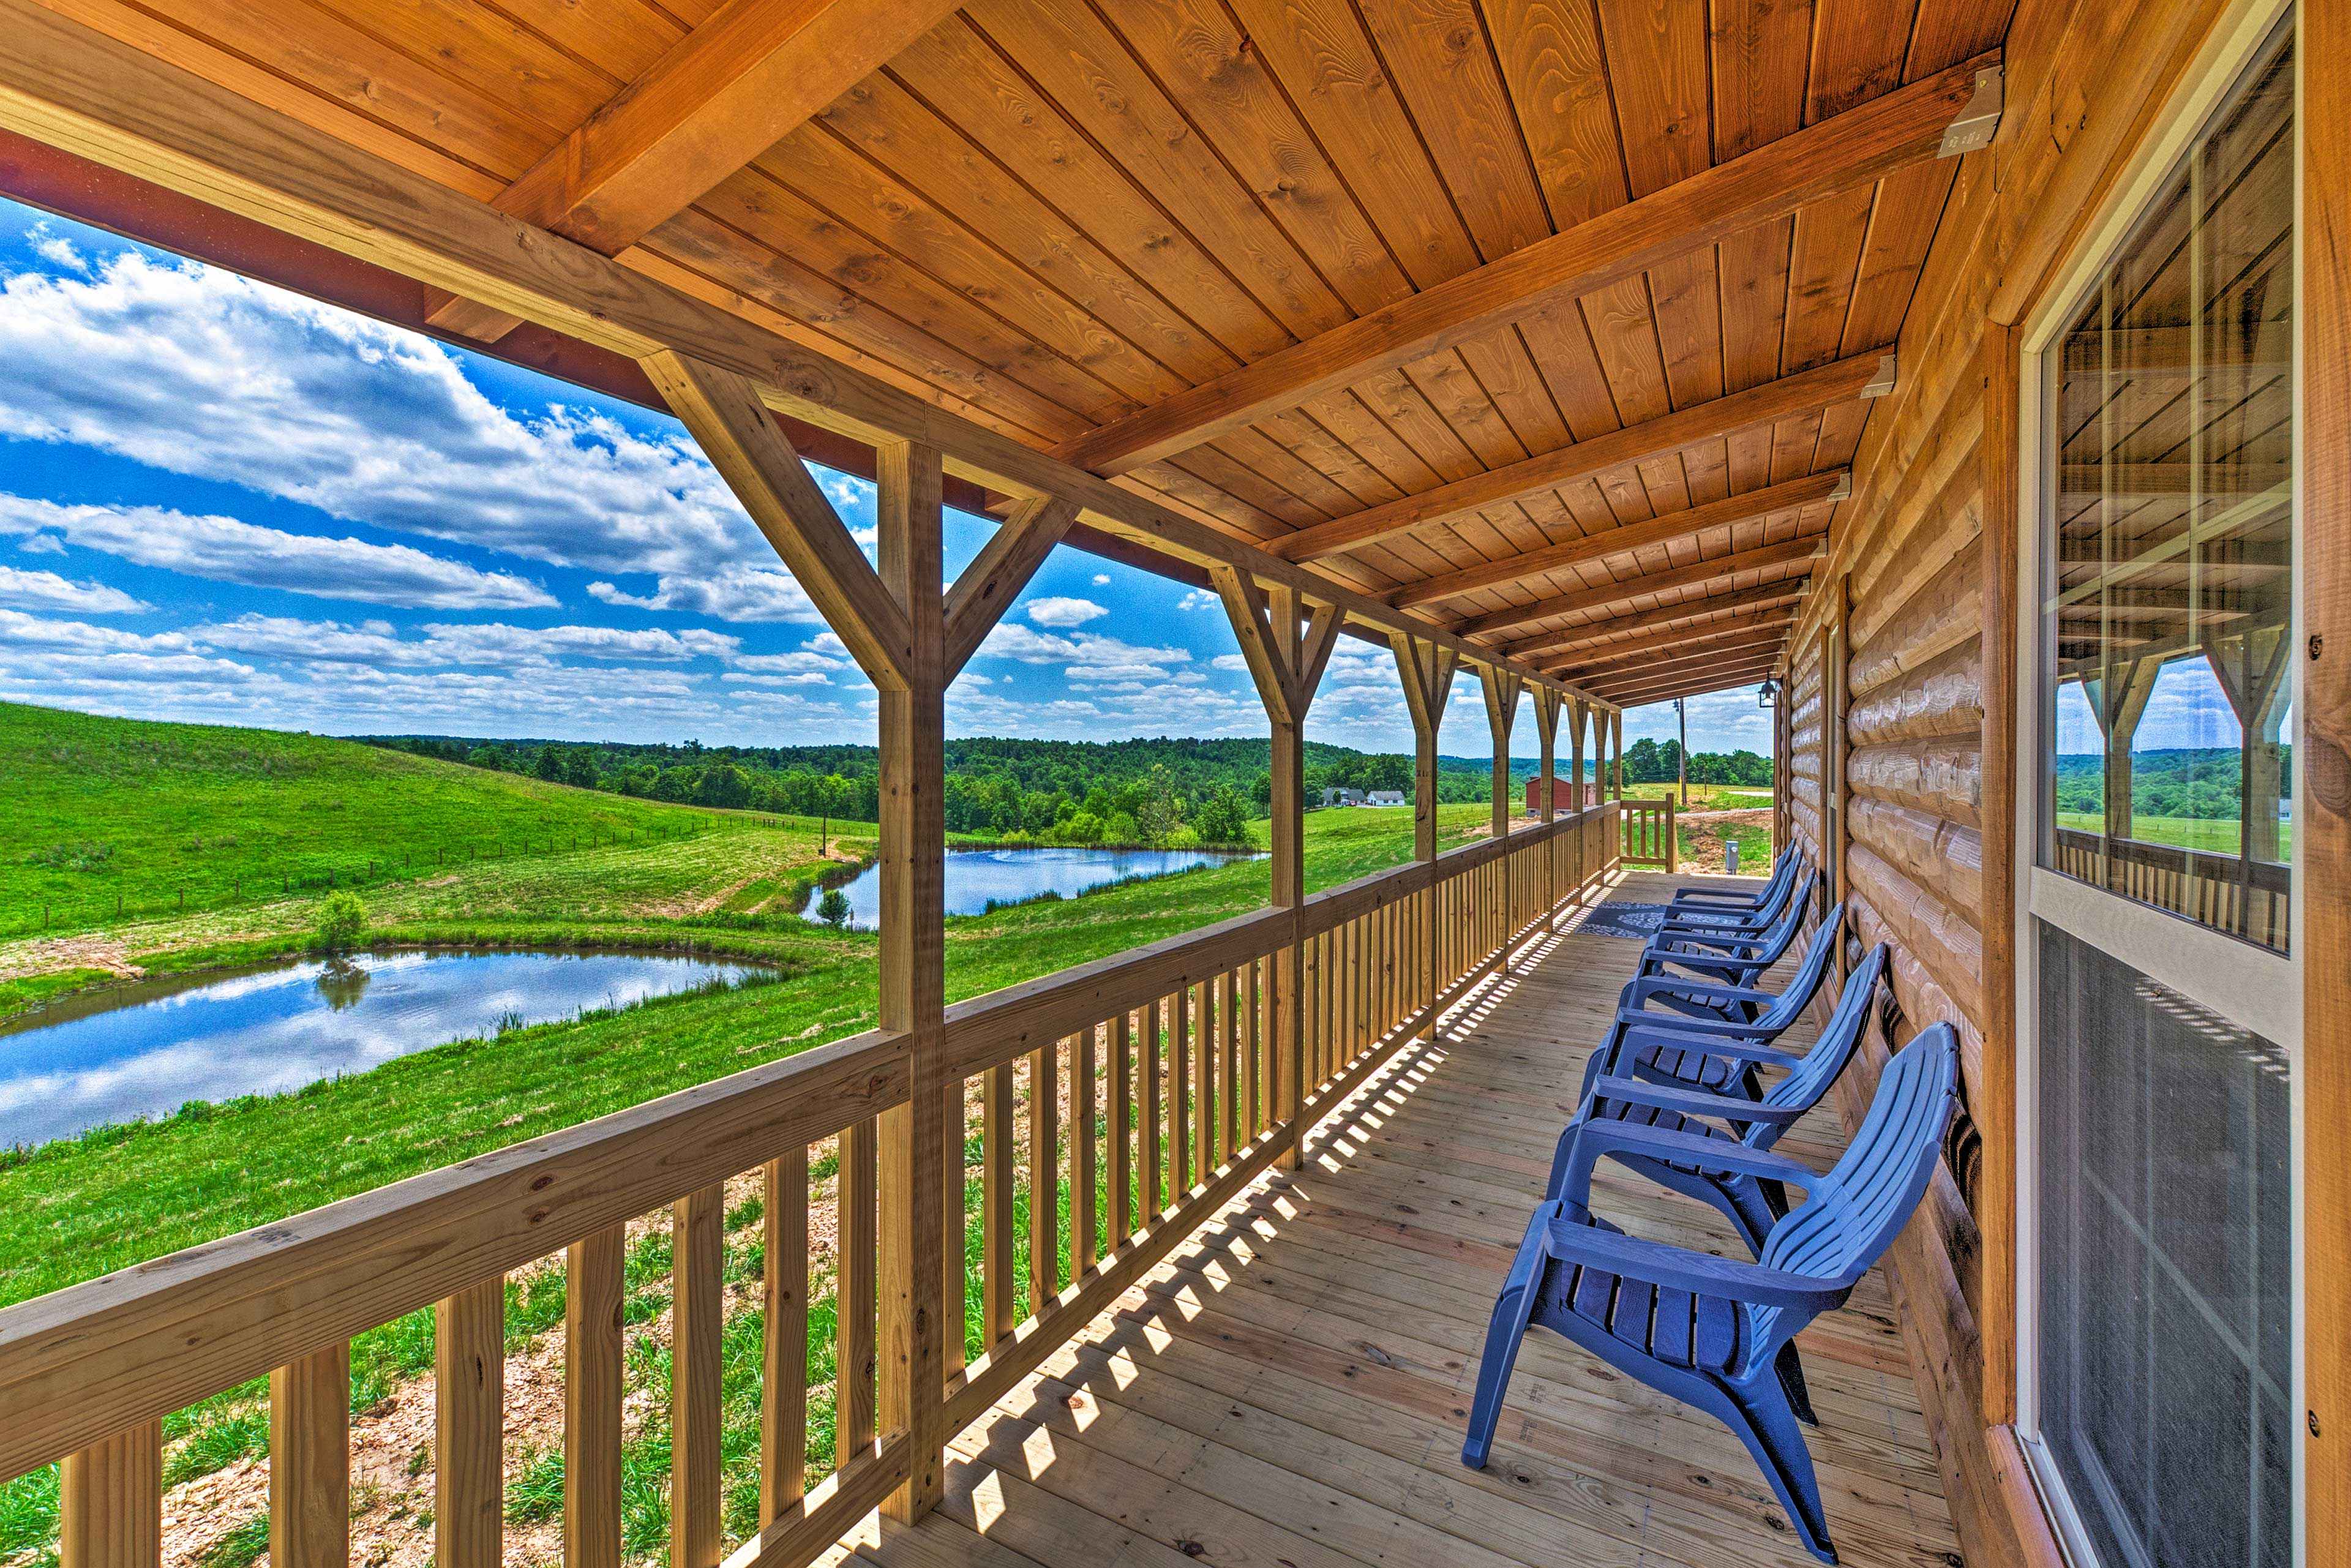 Find a scenic home base at this Mammoth Cave vacation rental cabin!